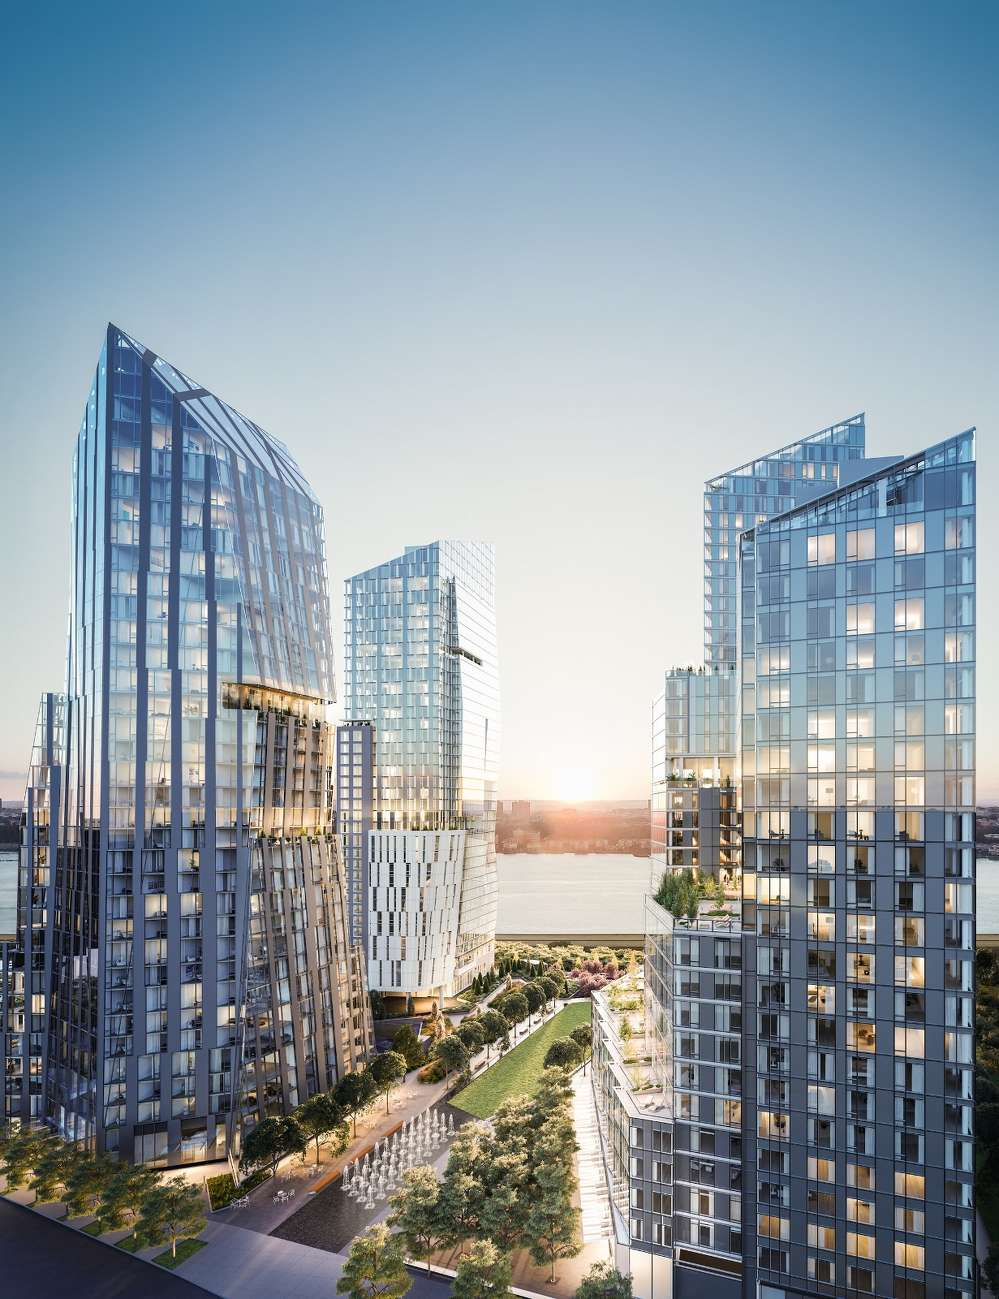 Waterline Square encompasses nearly five acres and will be located in Manhattan along the Hudson River from West 59th Street to West 61st Street, where Midtown meets the Upper West Side.